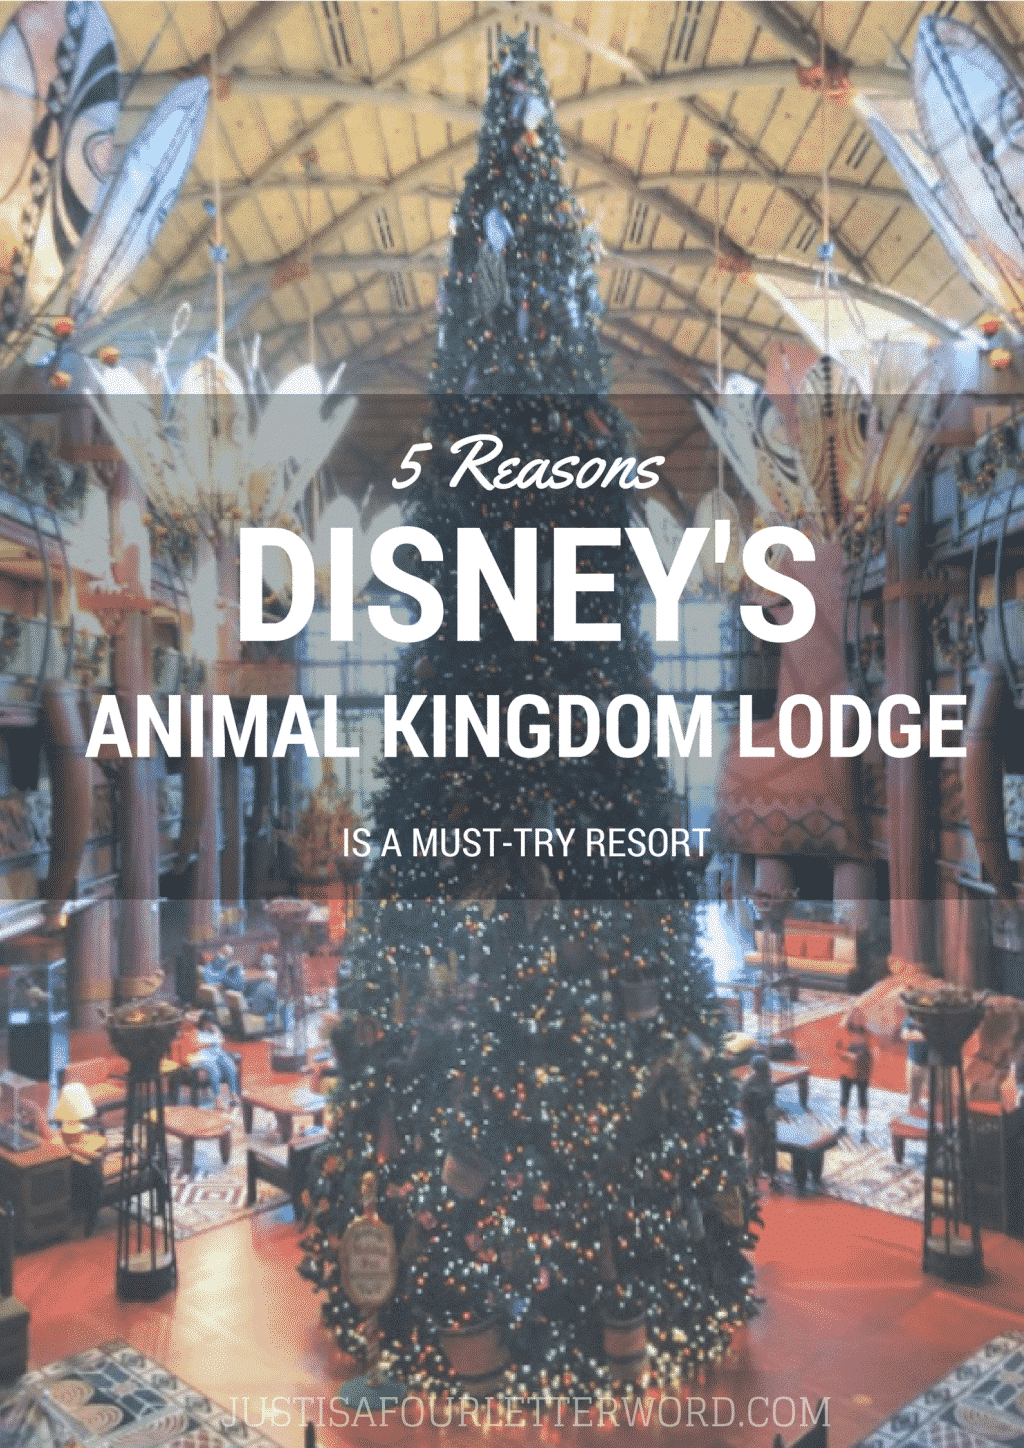 5 reasons Disney's Animal Kingdom Lodge is a must-try resort.